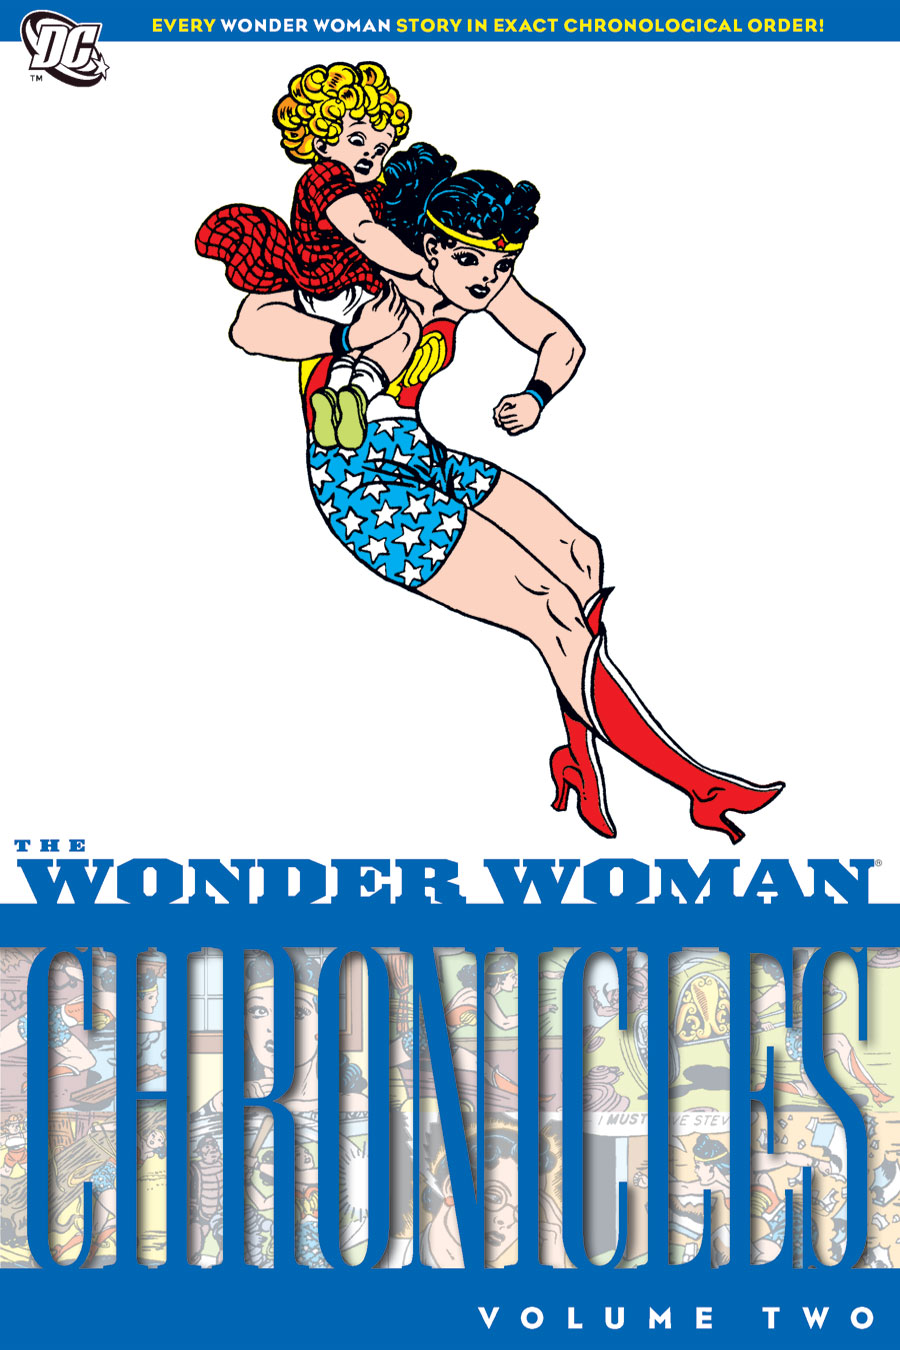 Wonder Woman Chronicles Vol. 2 (Collected)